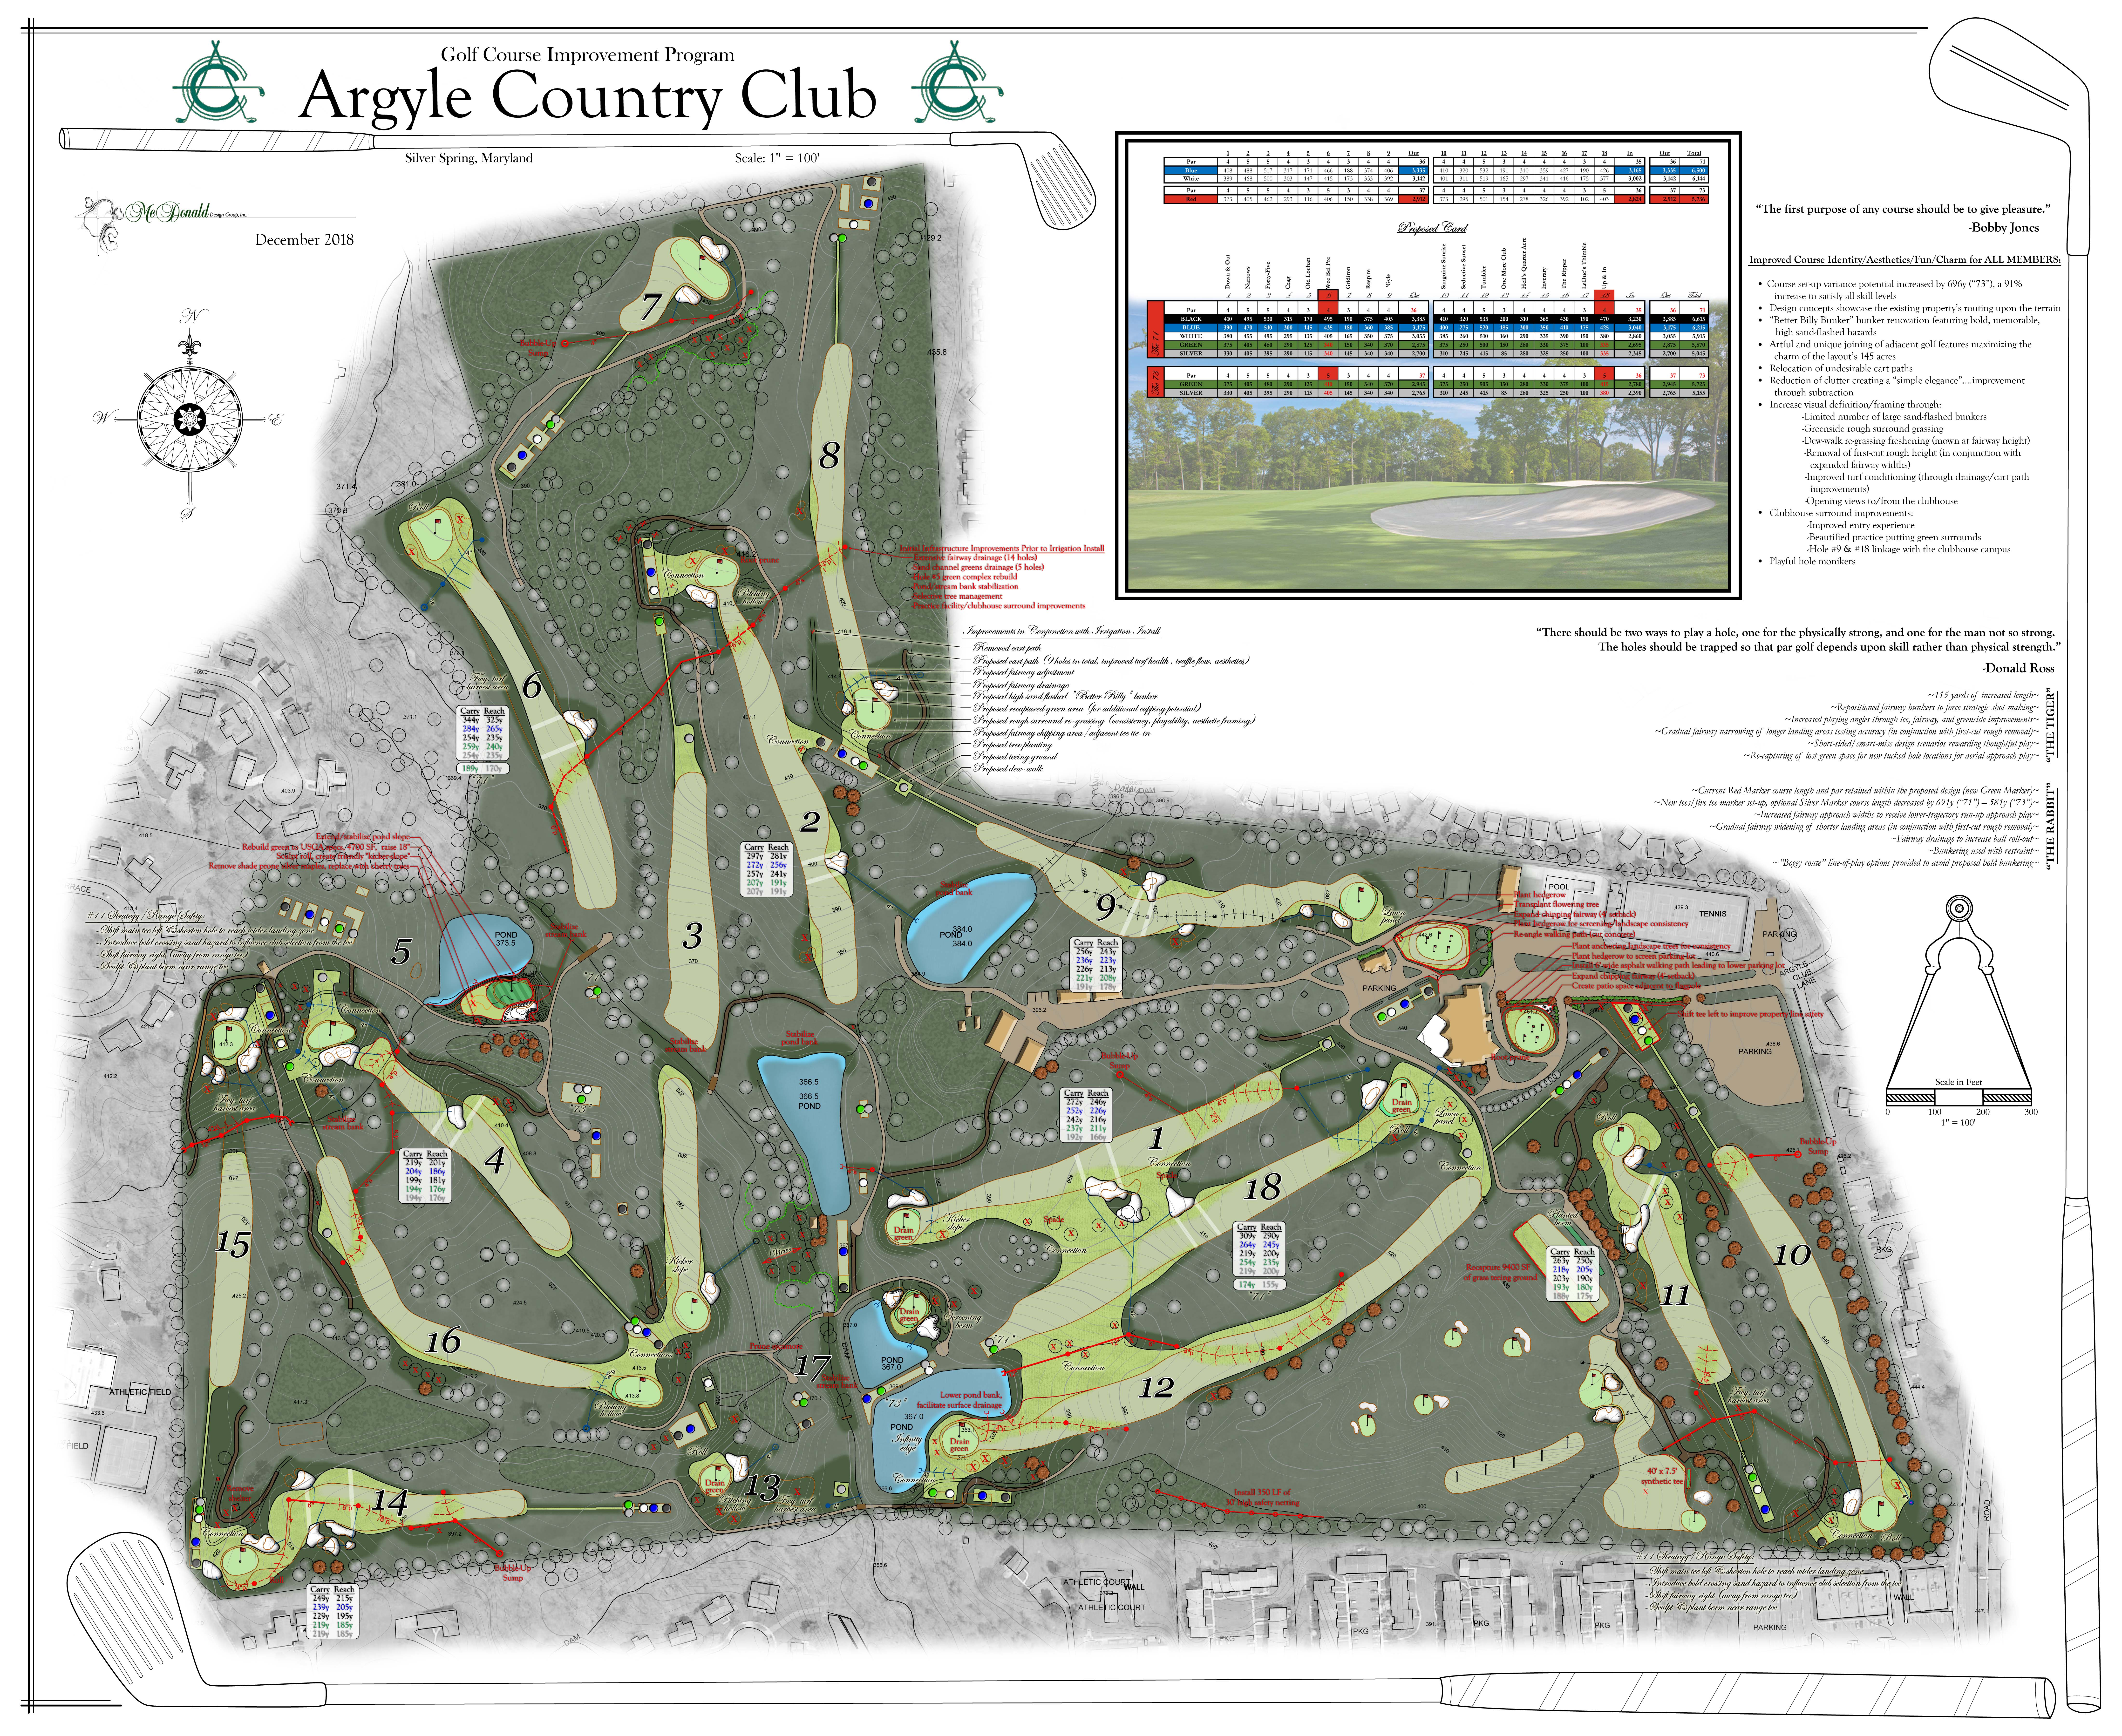 Argyle Country Club<br/>Master Planning